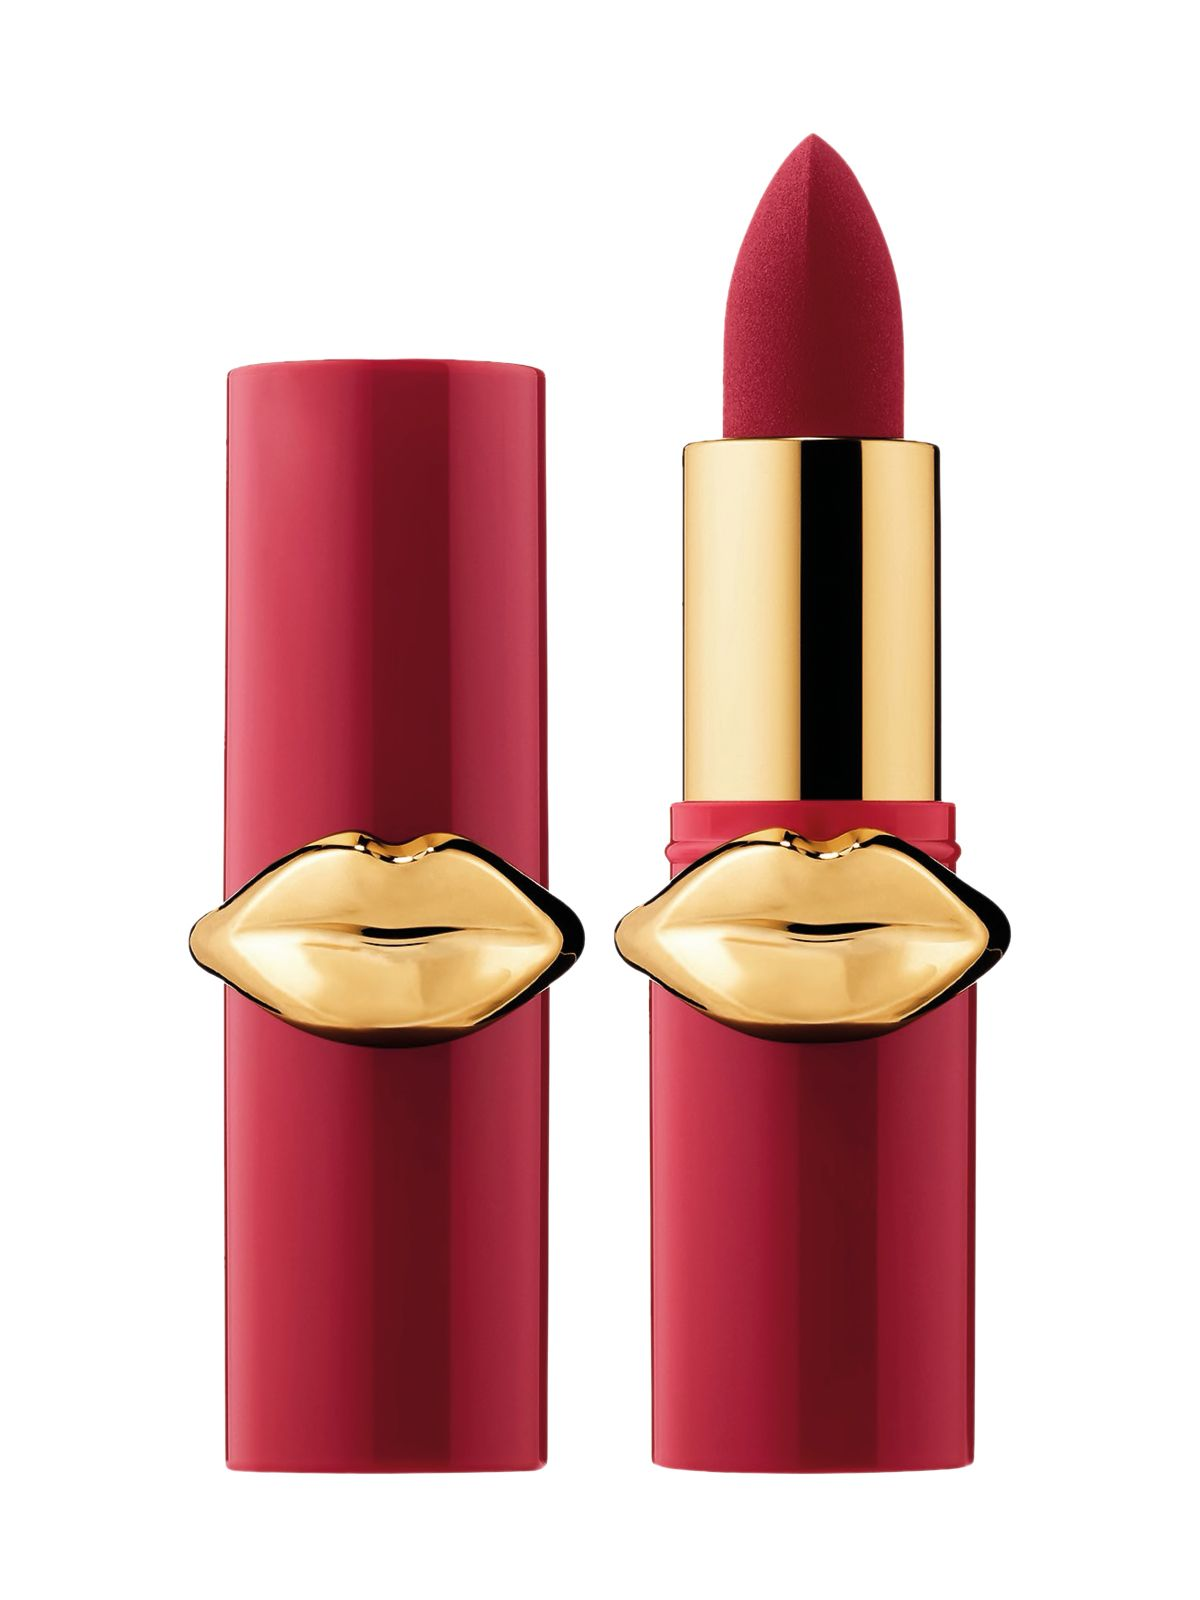 MatteTrance Lipstick by Pat McGrath Labs (Photo: Courtesy of Pat McGrath Labs)